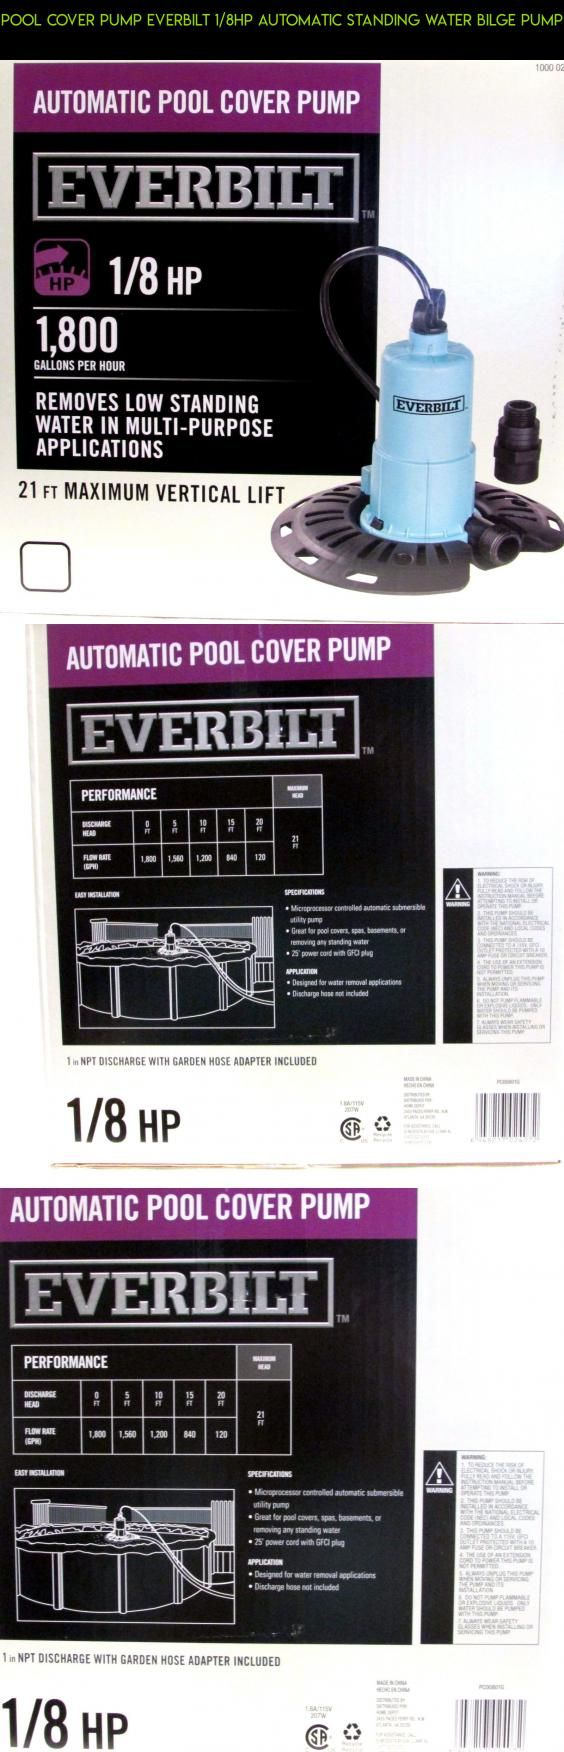 Pool Cover Pump EVERBILT 1/8HP Automatic standing water bilge pump  #plans #racing #pools #parts #gadgets #pump #fpv #camera #shopping #kit #tech #products #cover #technology #drone